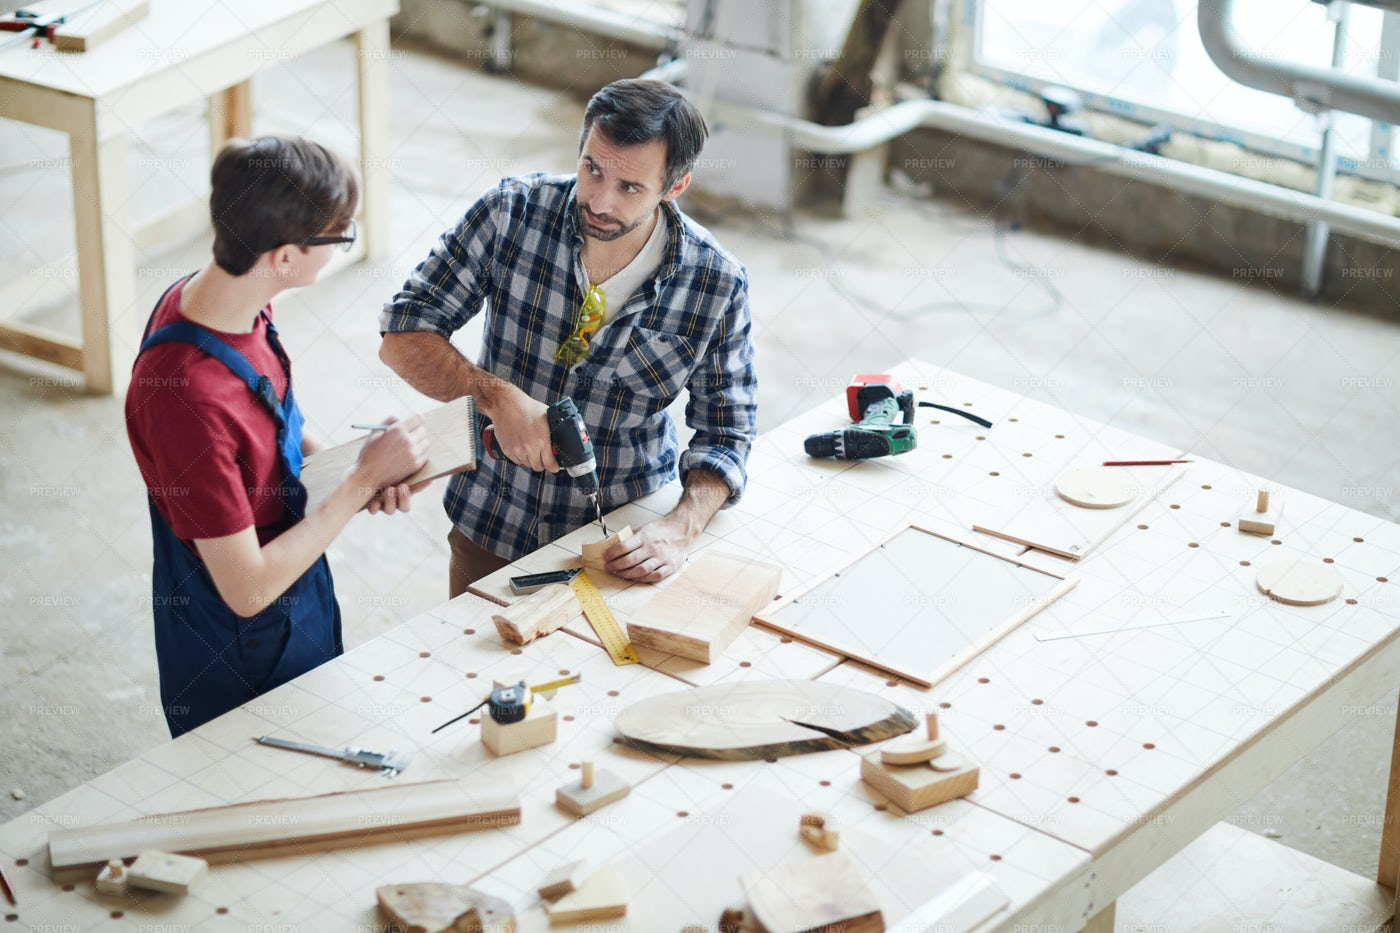 Showing How To Make Hole In Wood: Stock Photos